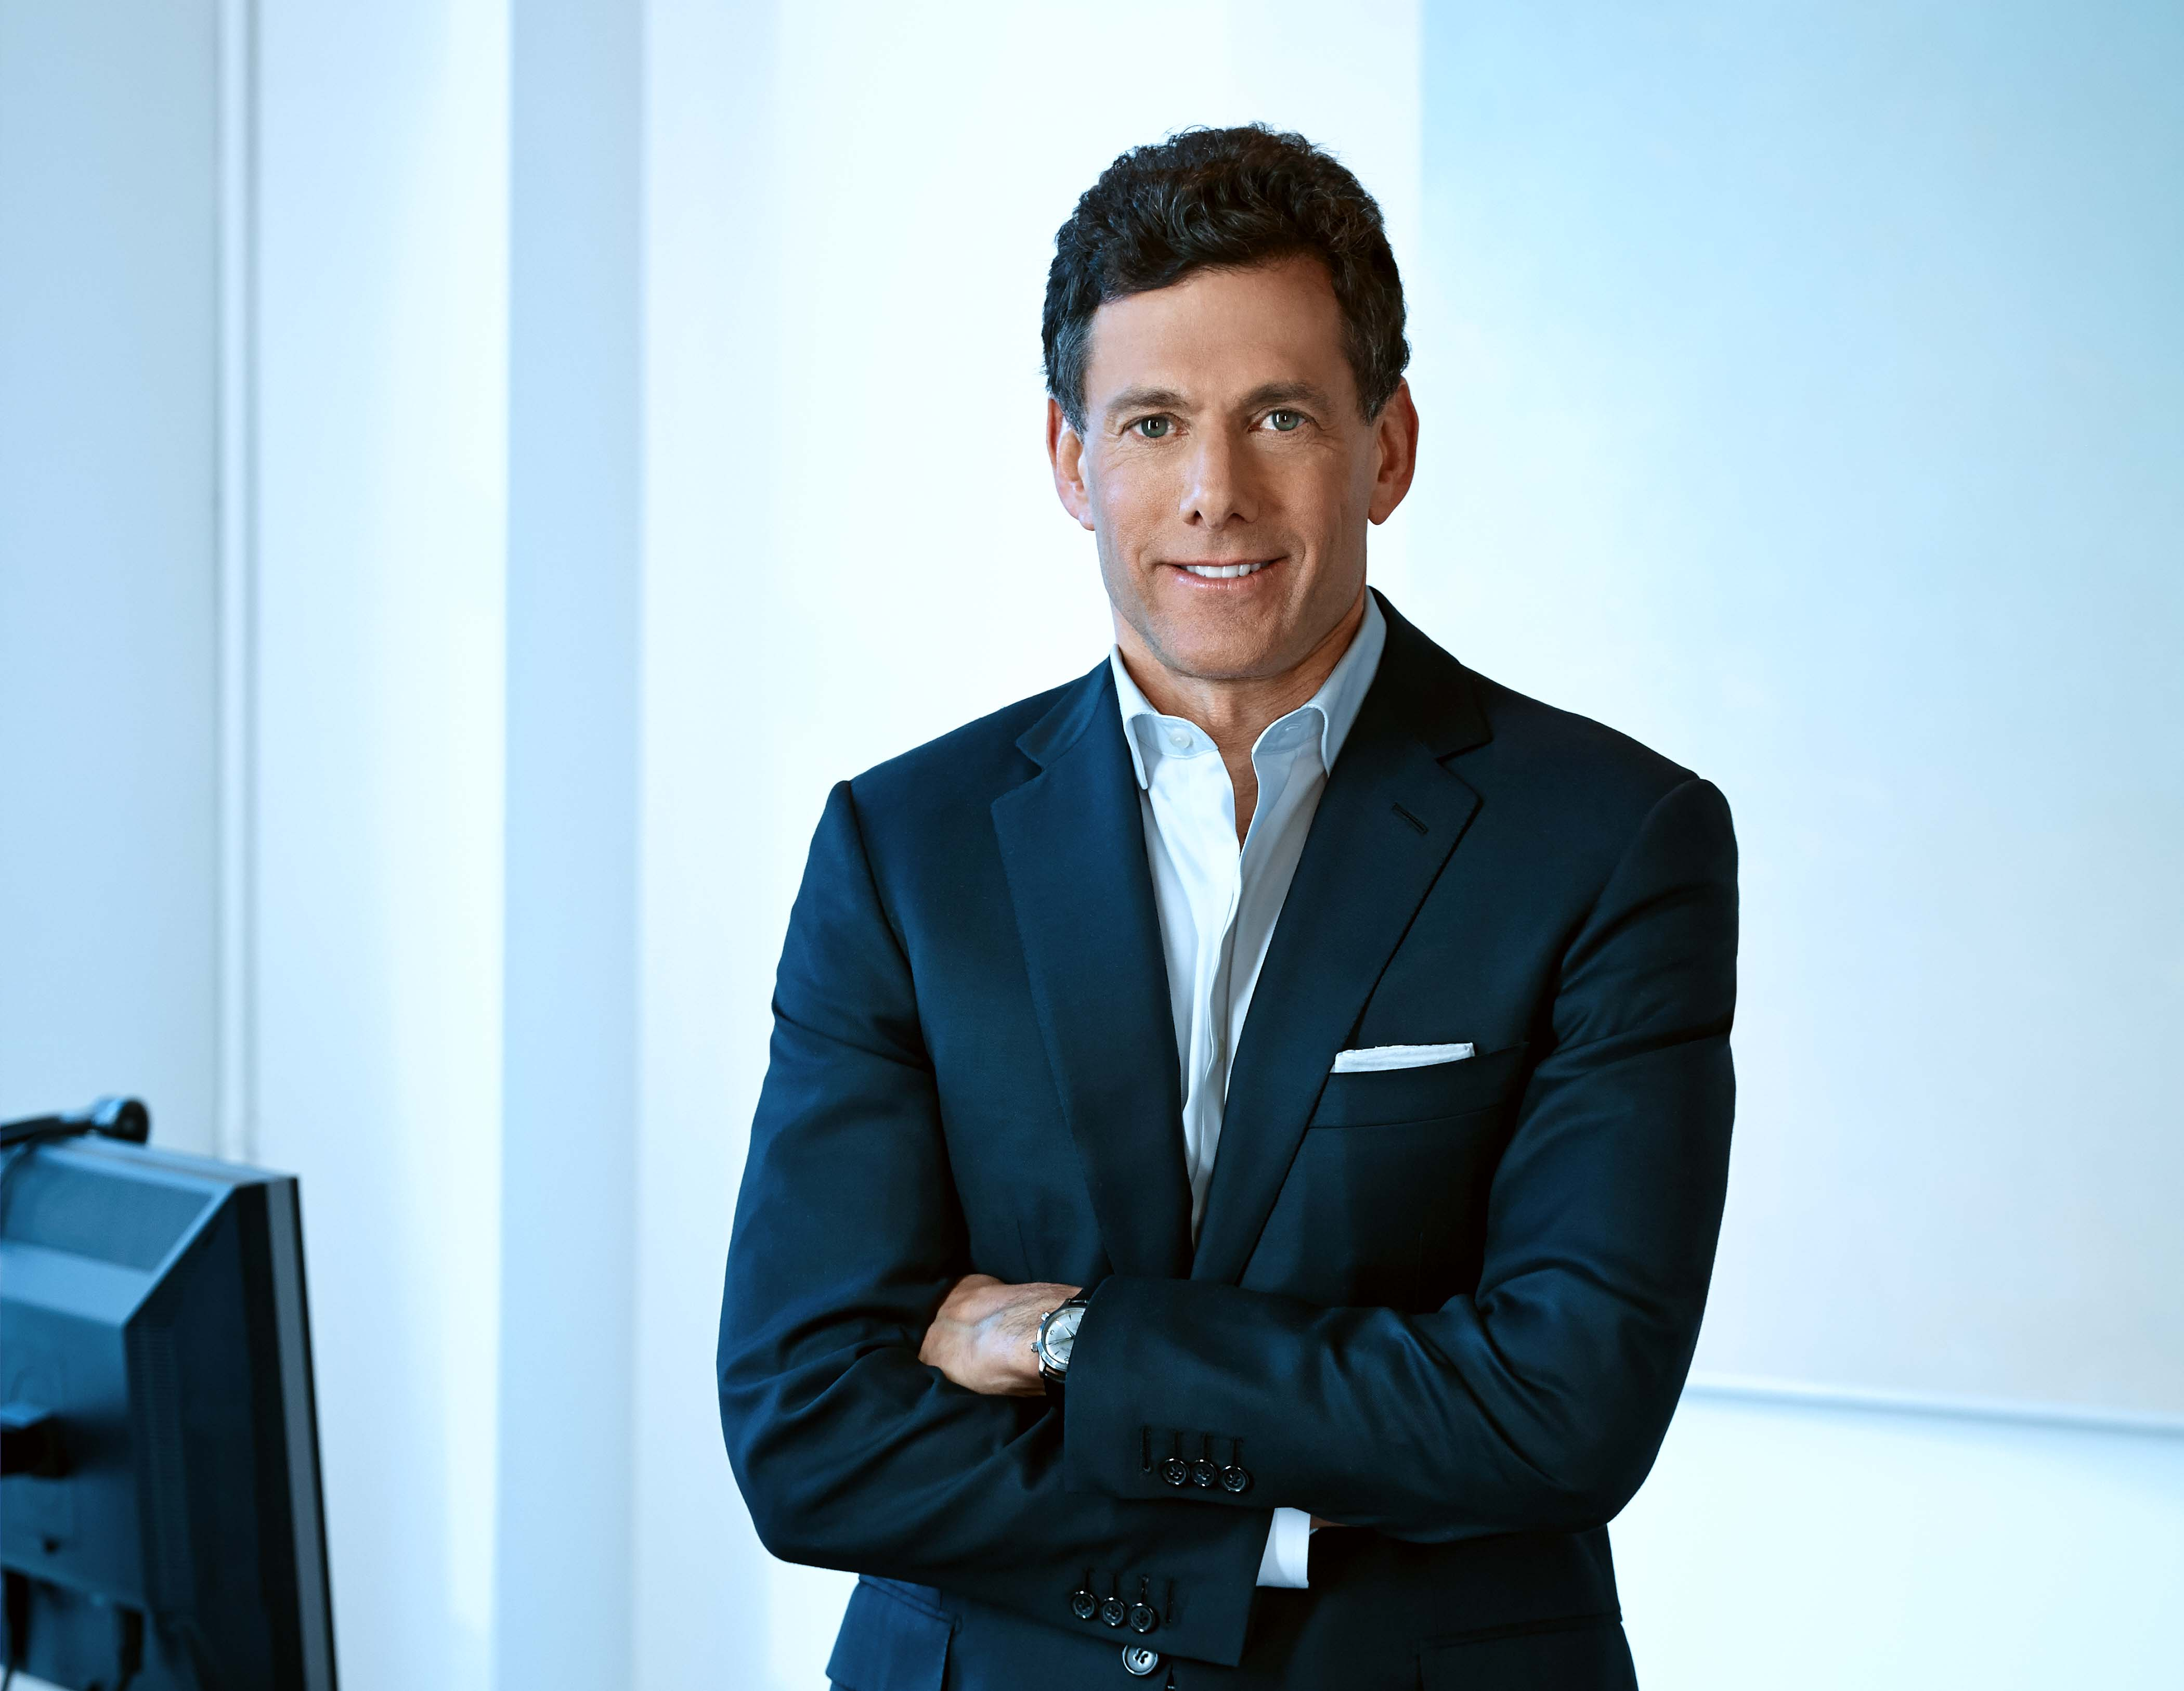 The 63-year old son of father (?) and mother(?) Strauss Zelnick in 2021 photo. Strauss Zelnick earned a  million dollar salary - leaving the net worth at  million in 2021